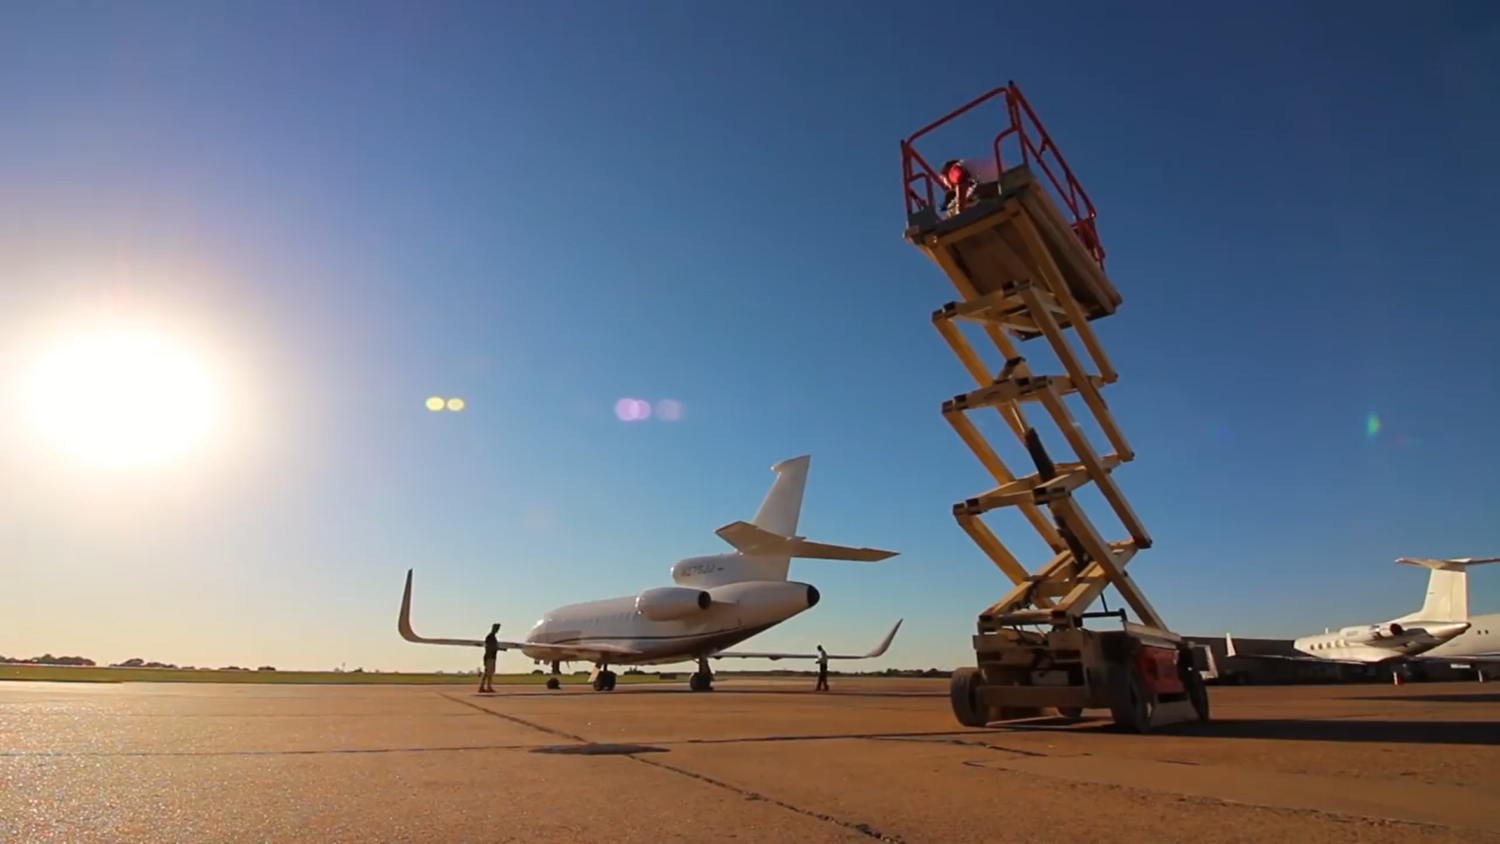 composite bts photography aviation automotive aerial plane